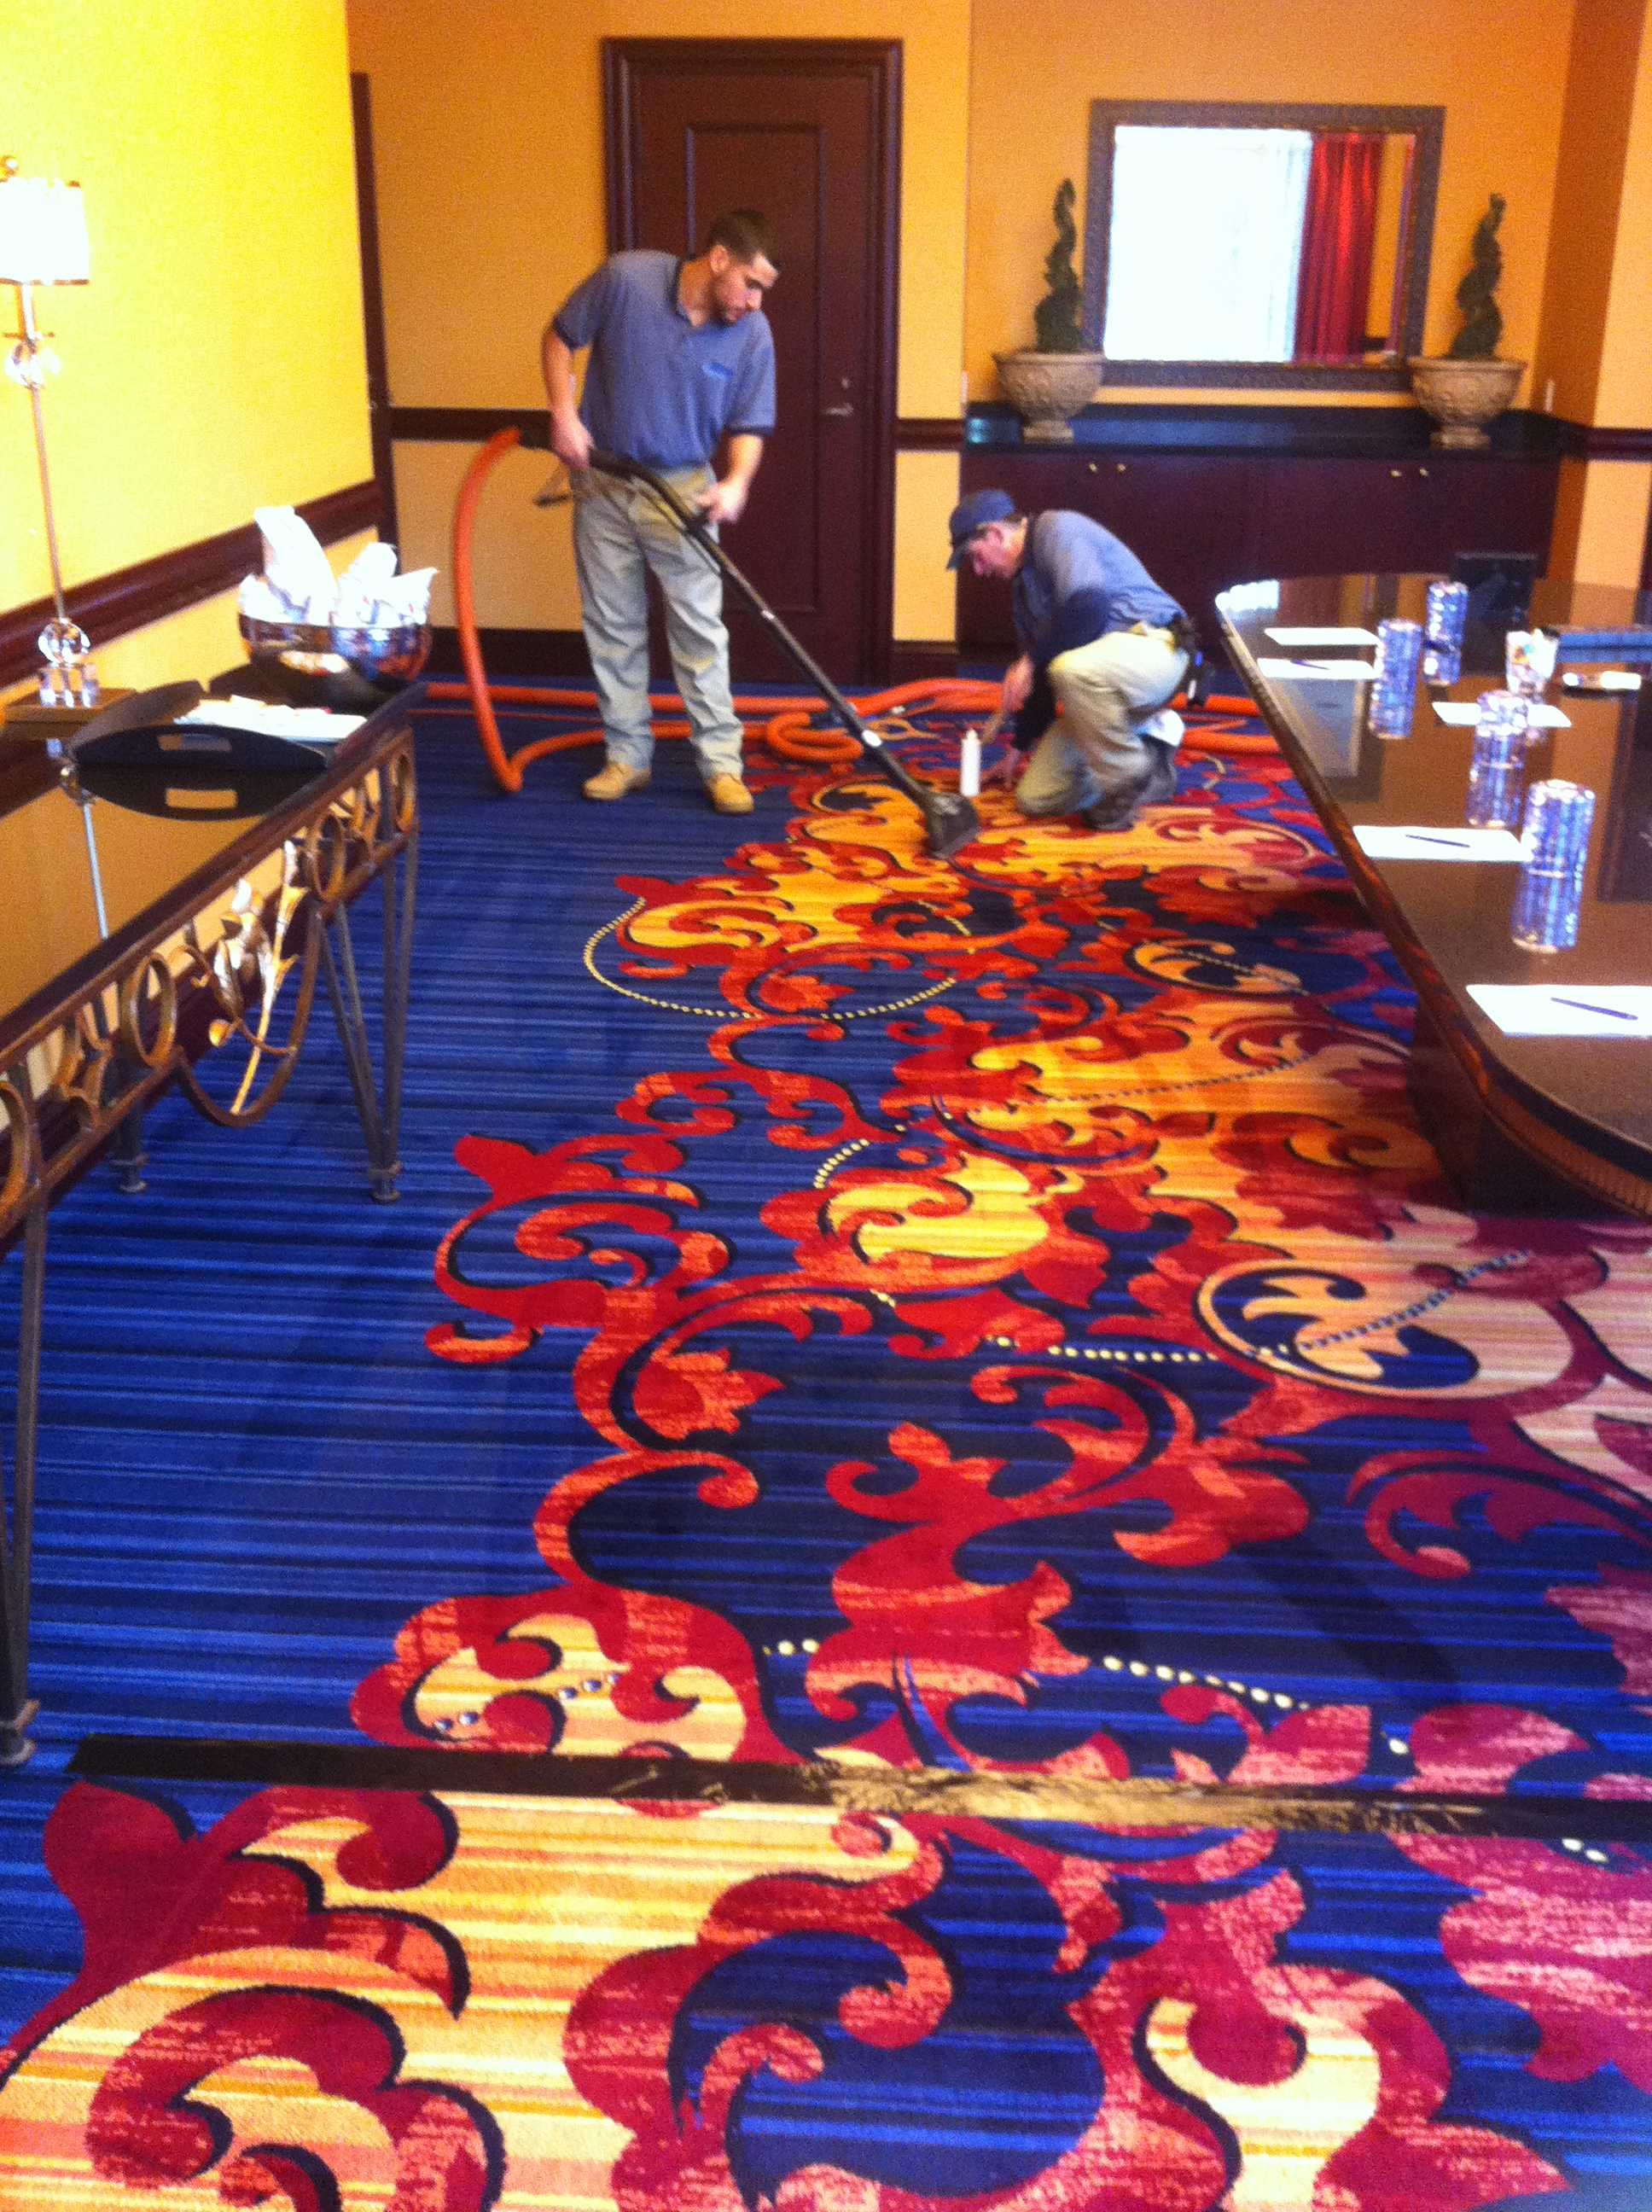 Wool Commercial Carpet Cleaning For Hotels